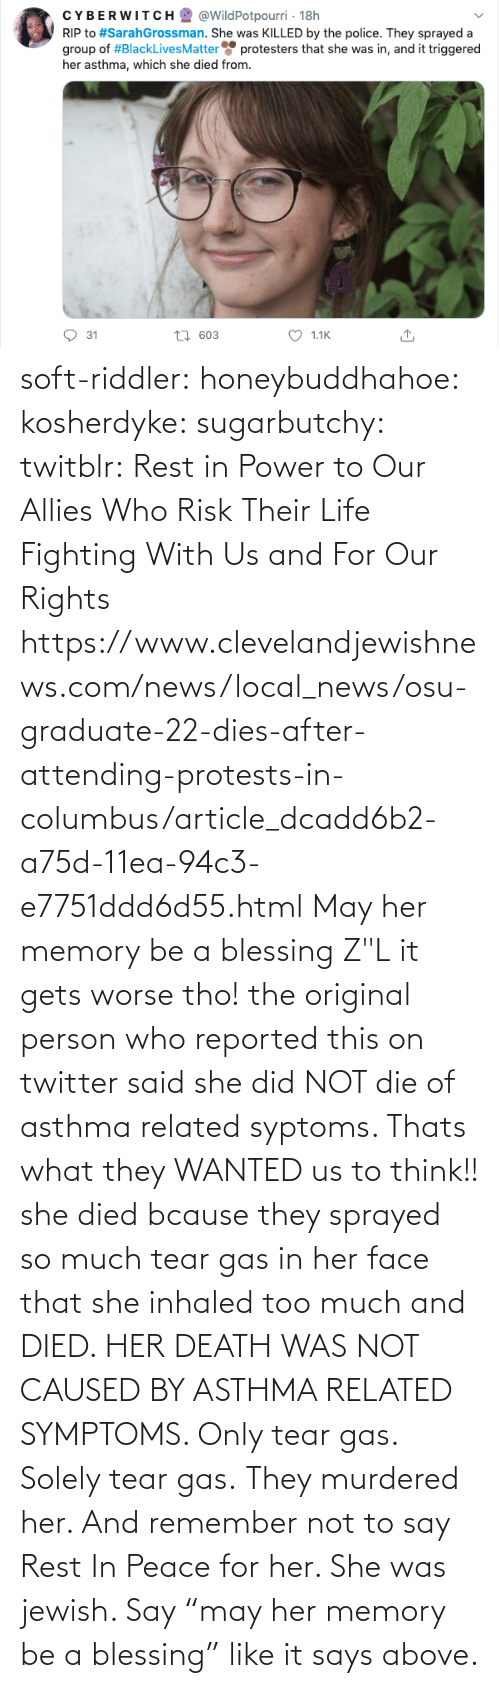 "Protests: soft-riddler:  honeybuddhahoe:  kosherdyke:  sugarbutchy:  twitblr: Rest in Power to Our Allies Who Risk Their Life Fighting With Us and For Our Rights https://www.clevelandjewishnews.com/news/local_news/osu-graduate-22-dies-after-attending-protests-in-columbus/article_dcadd6b2-a75d-11ea-94c3-e7751ddd6d55.html    May her memory be a blessing Z""L  it gets worse tho! the original person who reported this on twitter said she did NOT die of asthma related syptoms. Thats what they WANTED us to think!! she died bcause they sprayed so much tear gas in her face that she inhaled too much and DIED. HER DEATH WAS NOT CAUSED BY ASTHMA RELATED SYMPTOMS. Only tear gas. Solely tear gas. They murdered her.     And remember not to say Rest In Peace for her. She was jewish. Say ""may her memory be a blessing"" like it says above."